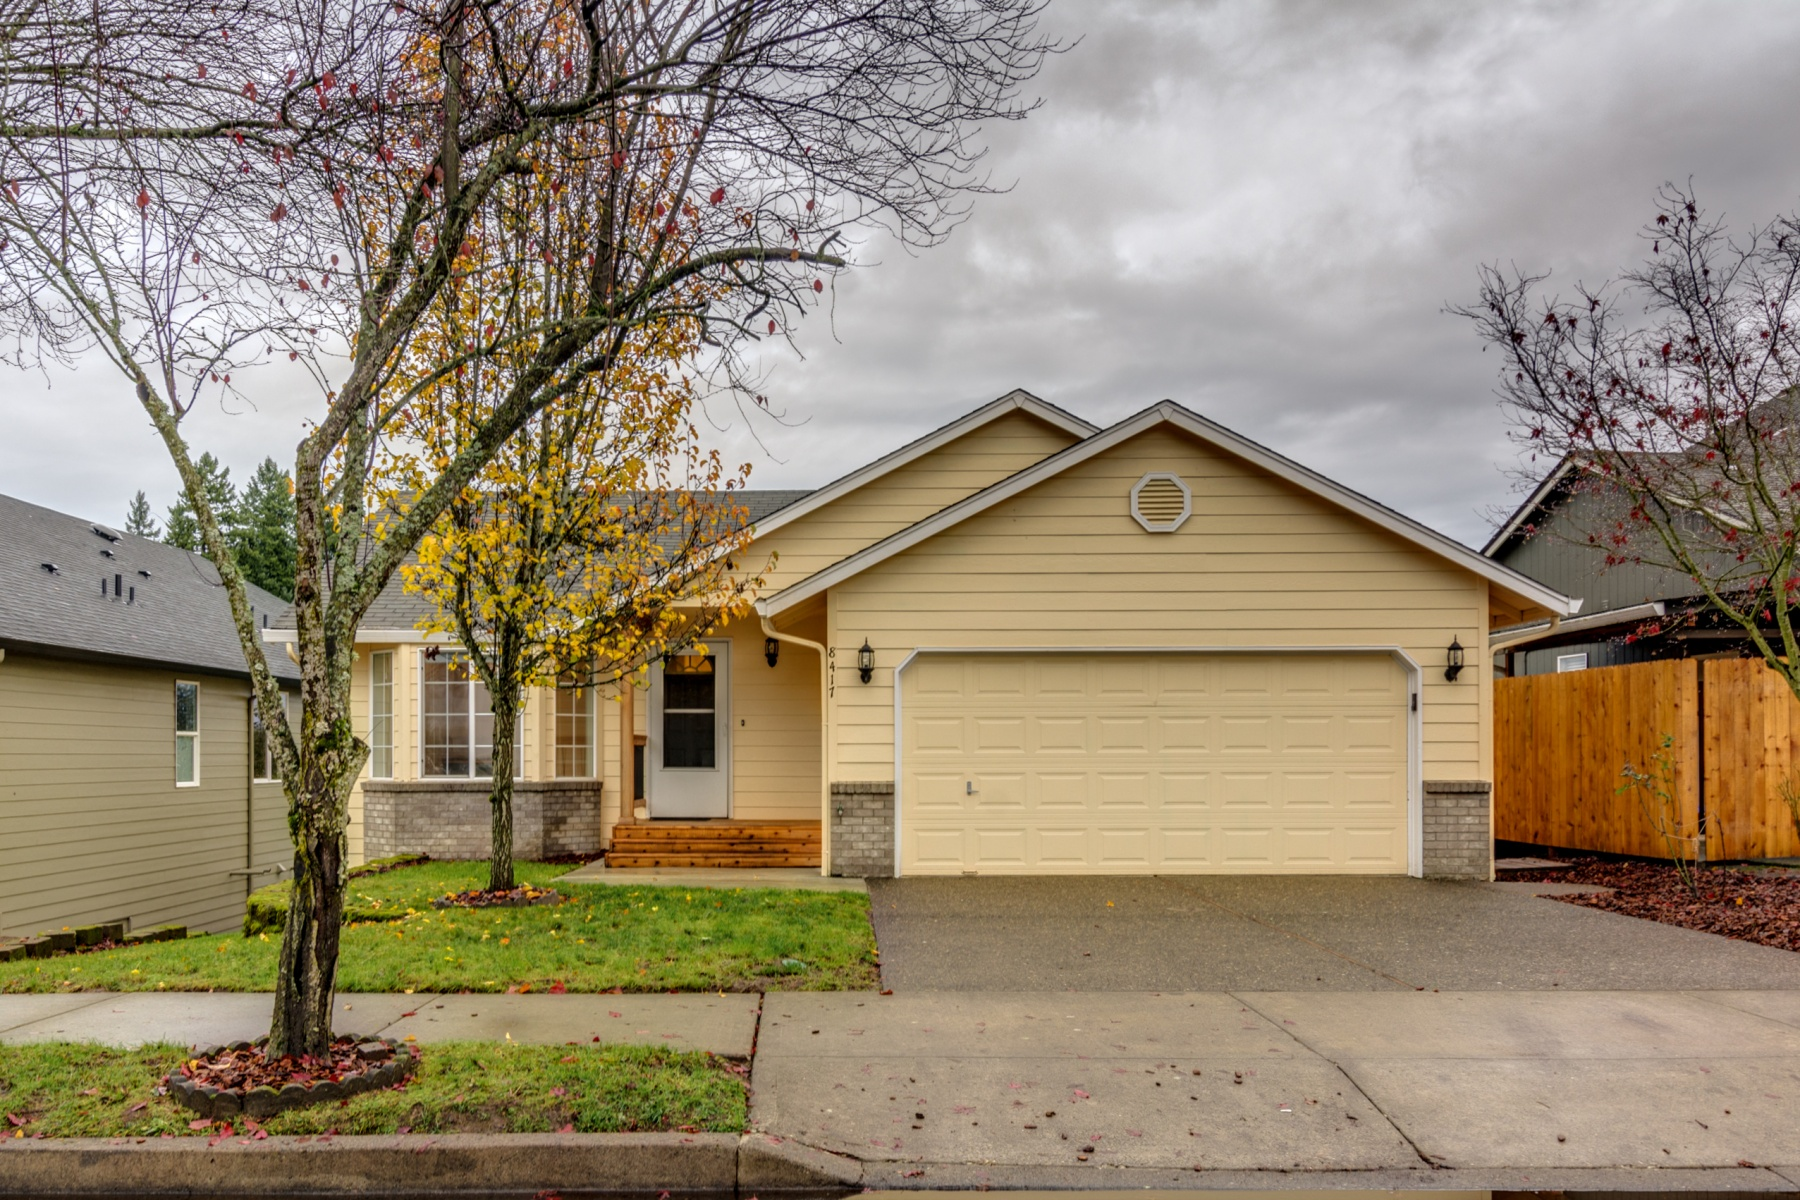 Single Family Home for Sale at Family Home with a View 8417 NE 39TH AVE Vancouver, Washington 98665 United States